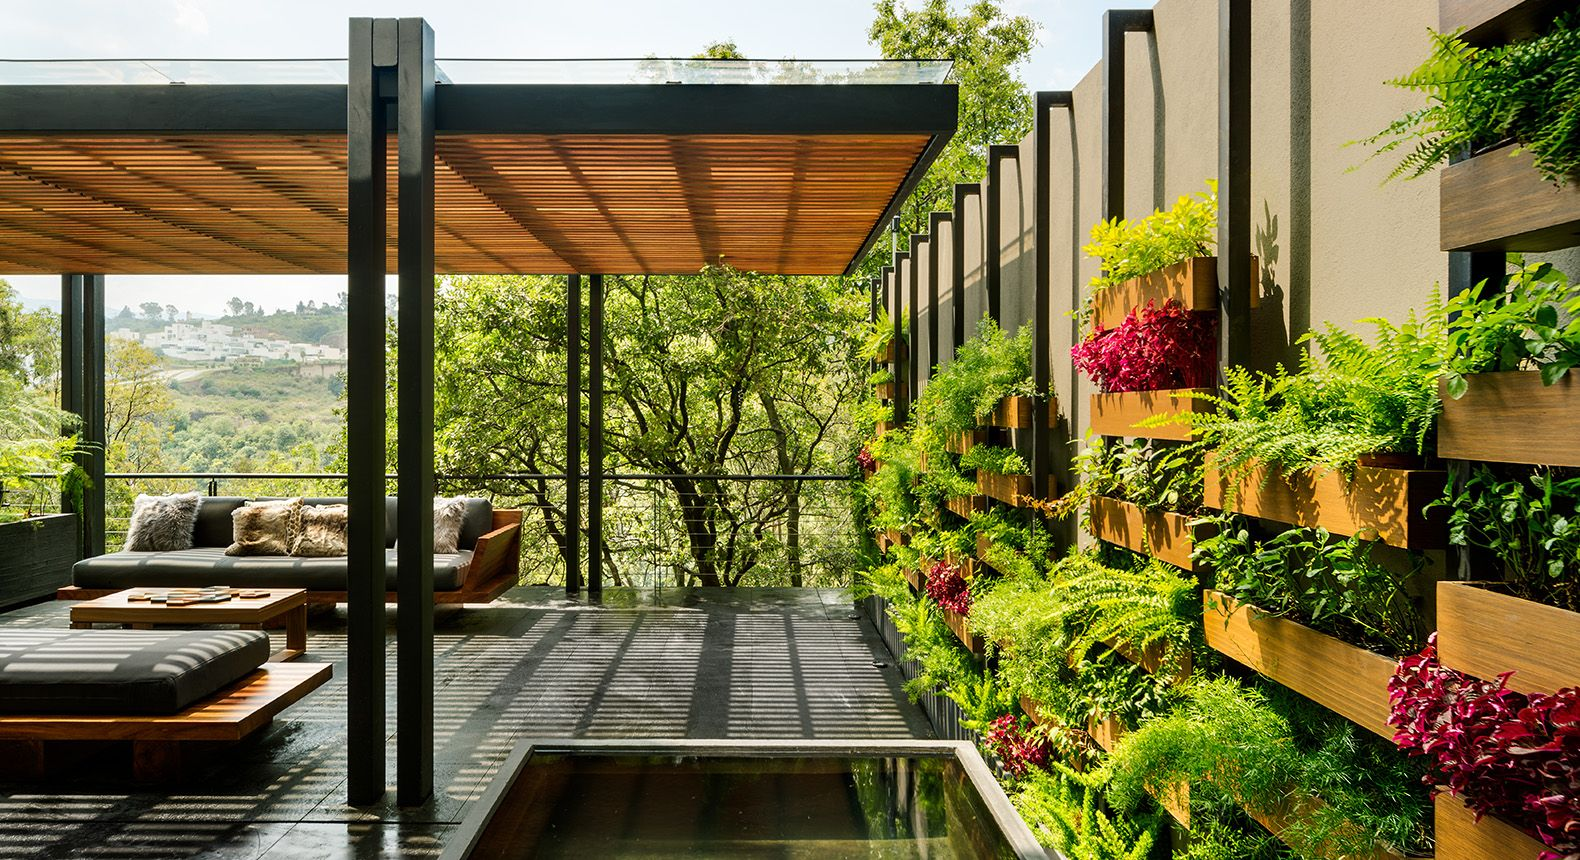 This Mexico City home is built around a gorgeous vertical garden    is part of Vertical garden City - The verdant Villa Jardín in Mexico City uses vegetation to unify its indoor and outdoor spaces